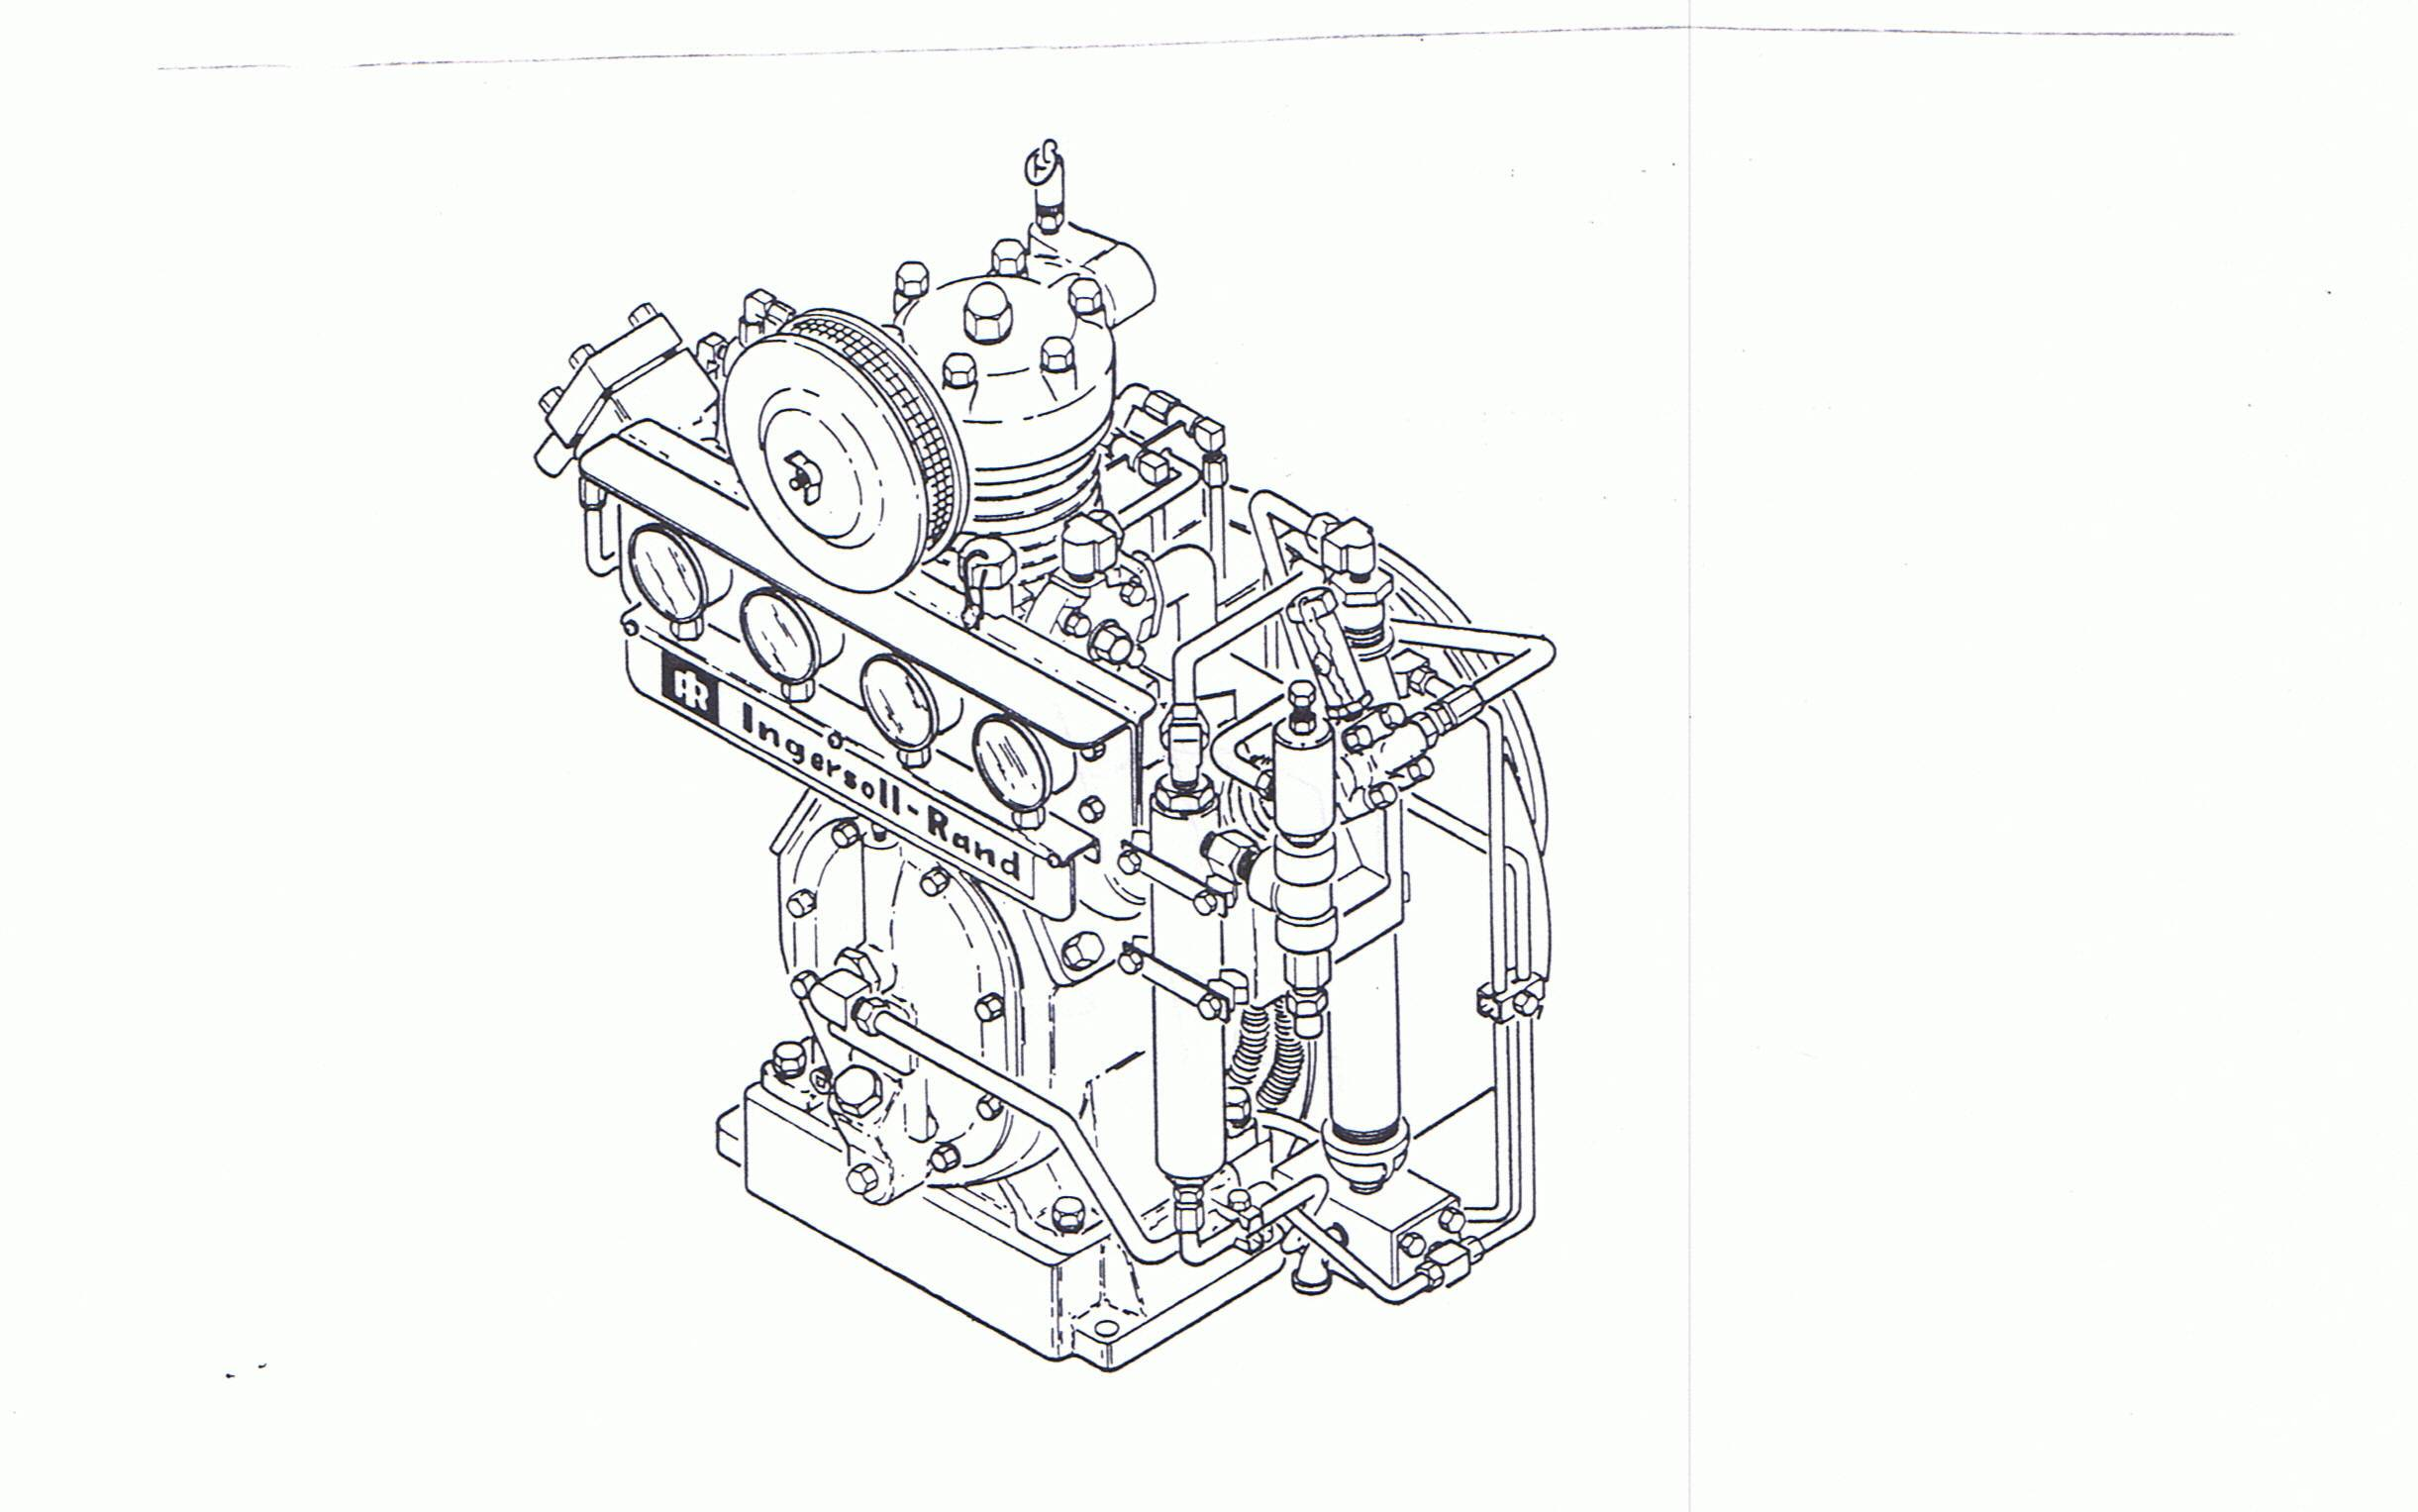 buick lucerne air compressor wiring diagram